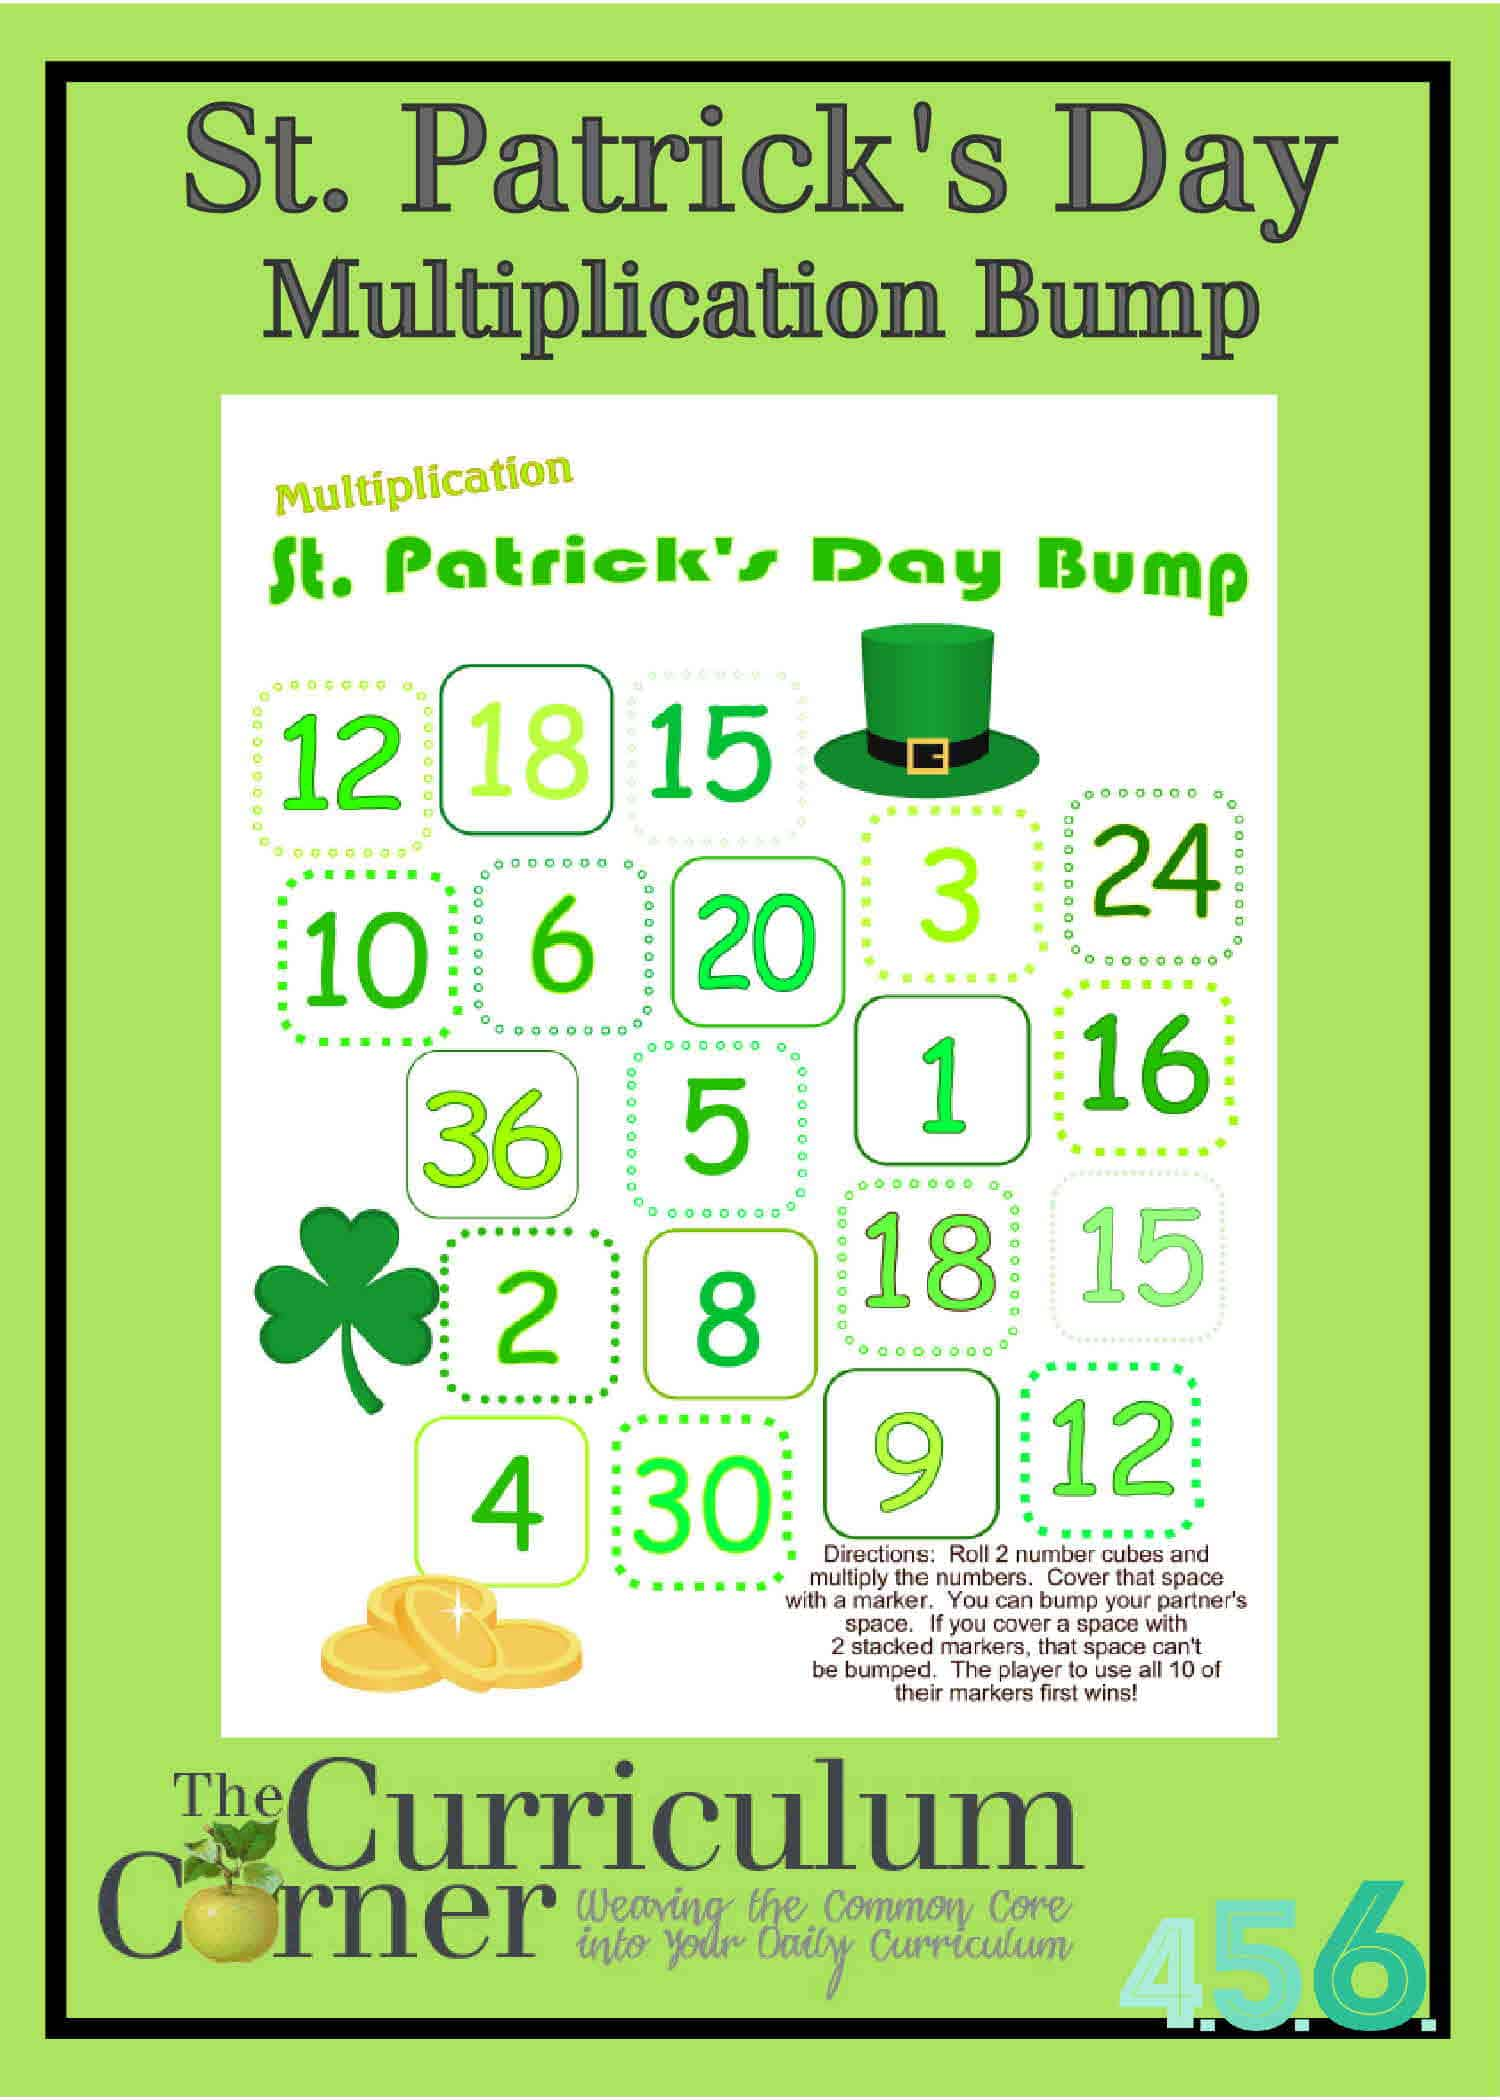 St. Patrick's Day Multiplication Bump